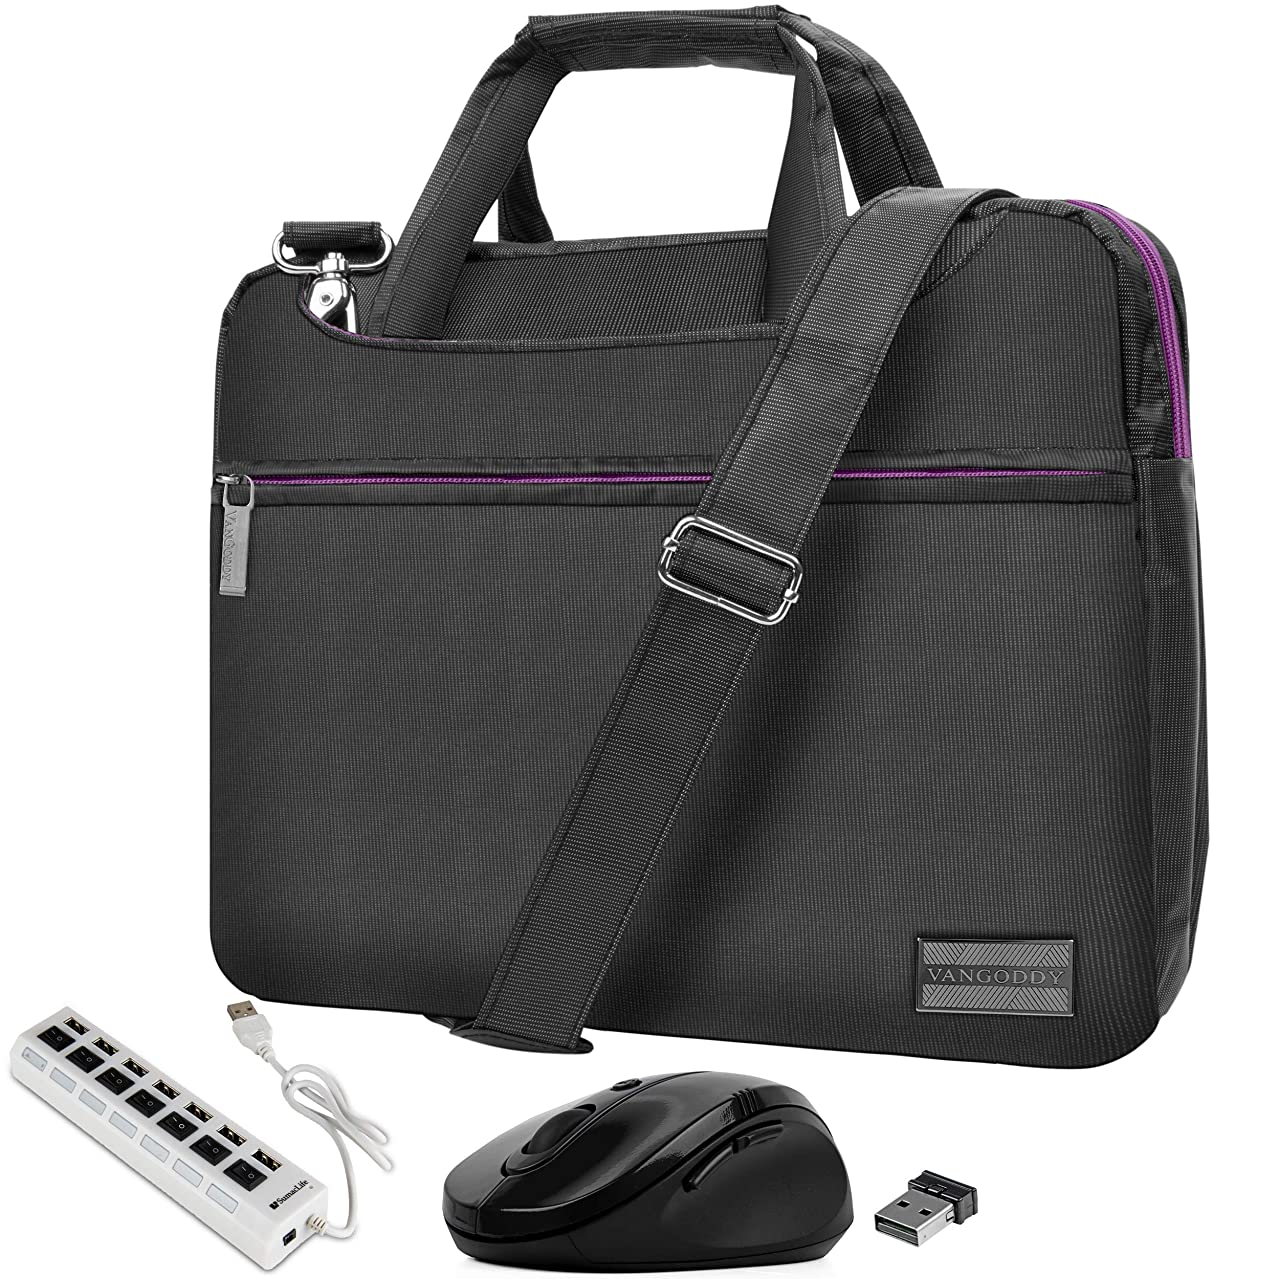 VanGoddy Slim Purple Trim Laptop Messenger Bag with USB Hub and Mouse Suitable for Samsung Notebook, ChromeBook, Galaxy Book2 11